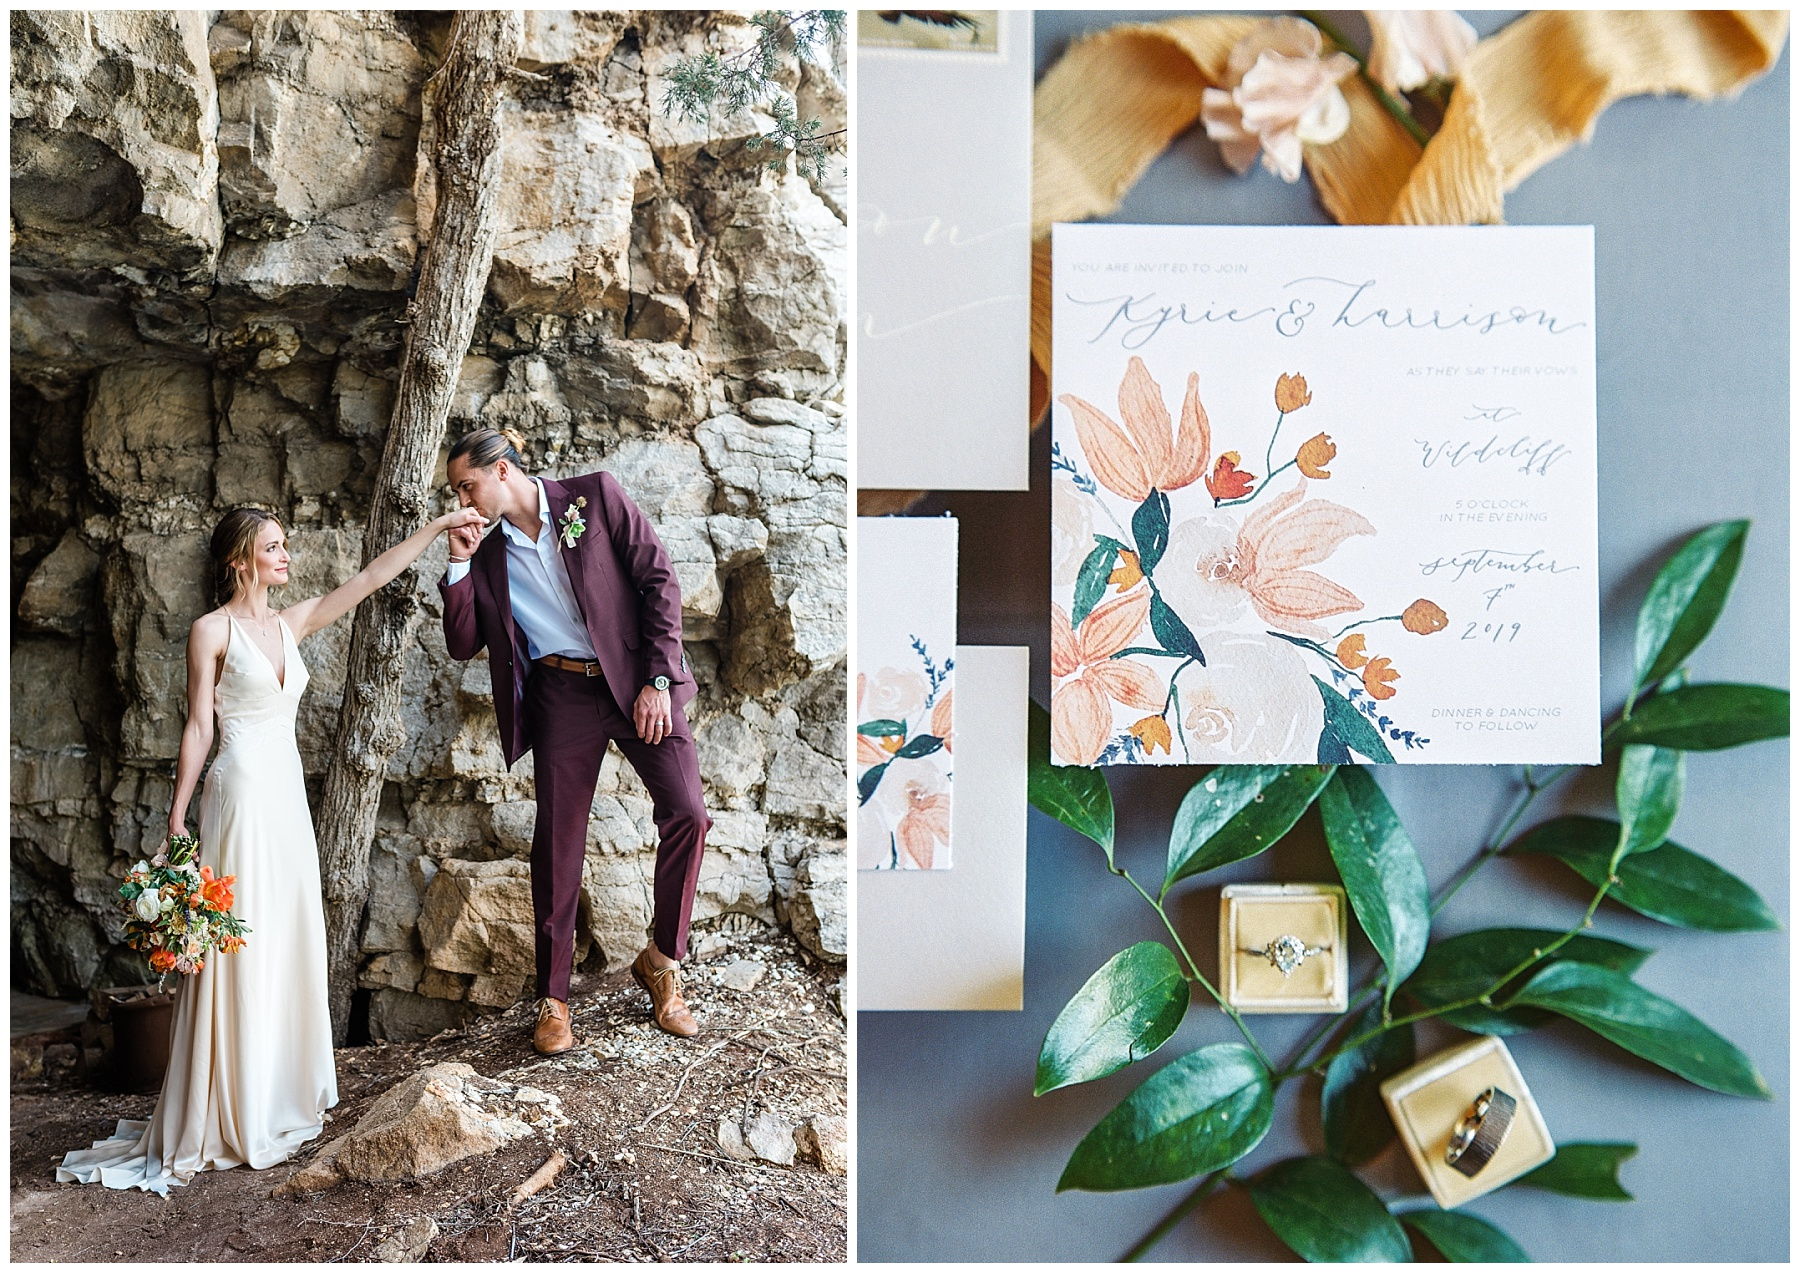 Intimate Spanish and French Inspired Destination Wedding with Lakeside Dinner Party at Dusk at Wildcliff by Kelsi Kliethermes Photography Best Missouri and Maui Wedding Photographer_0025.jpg